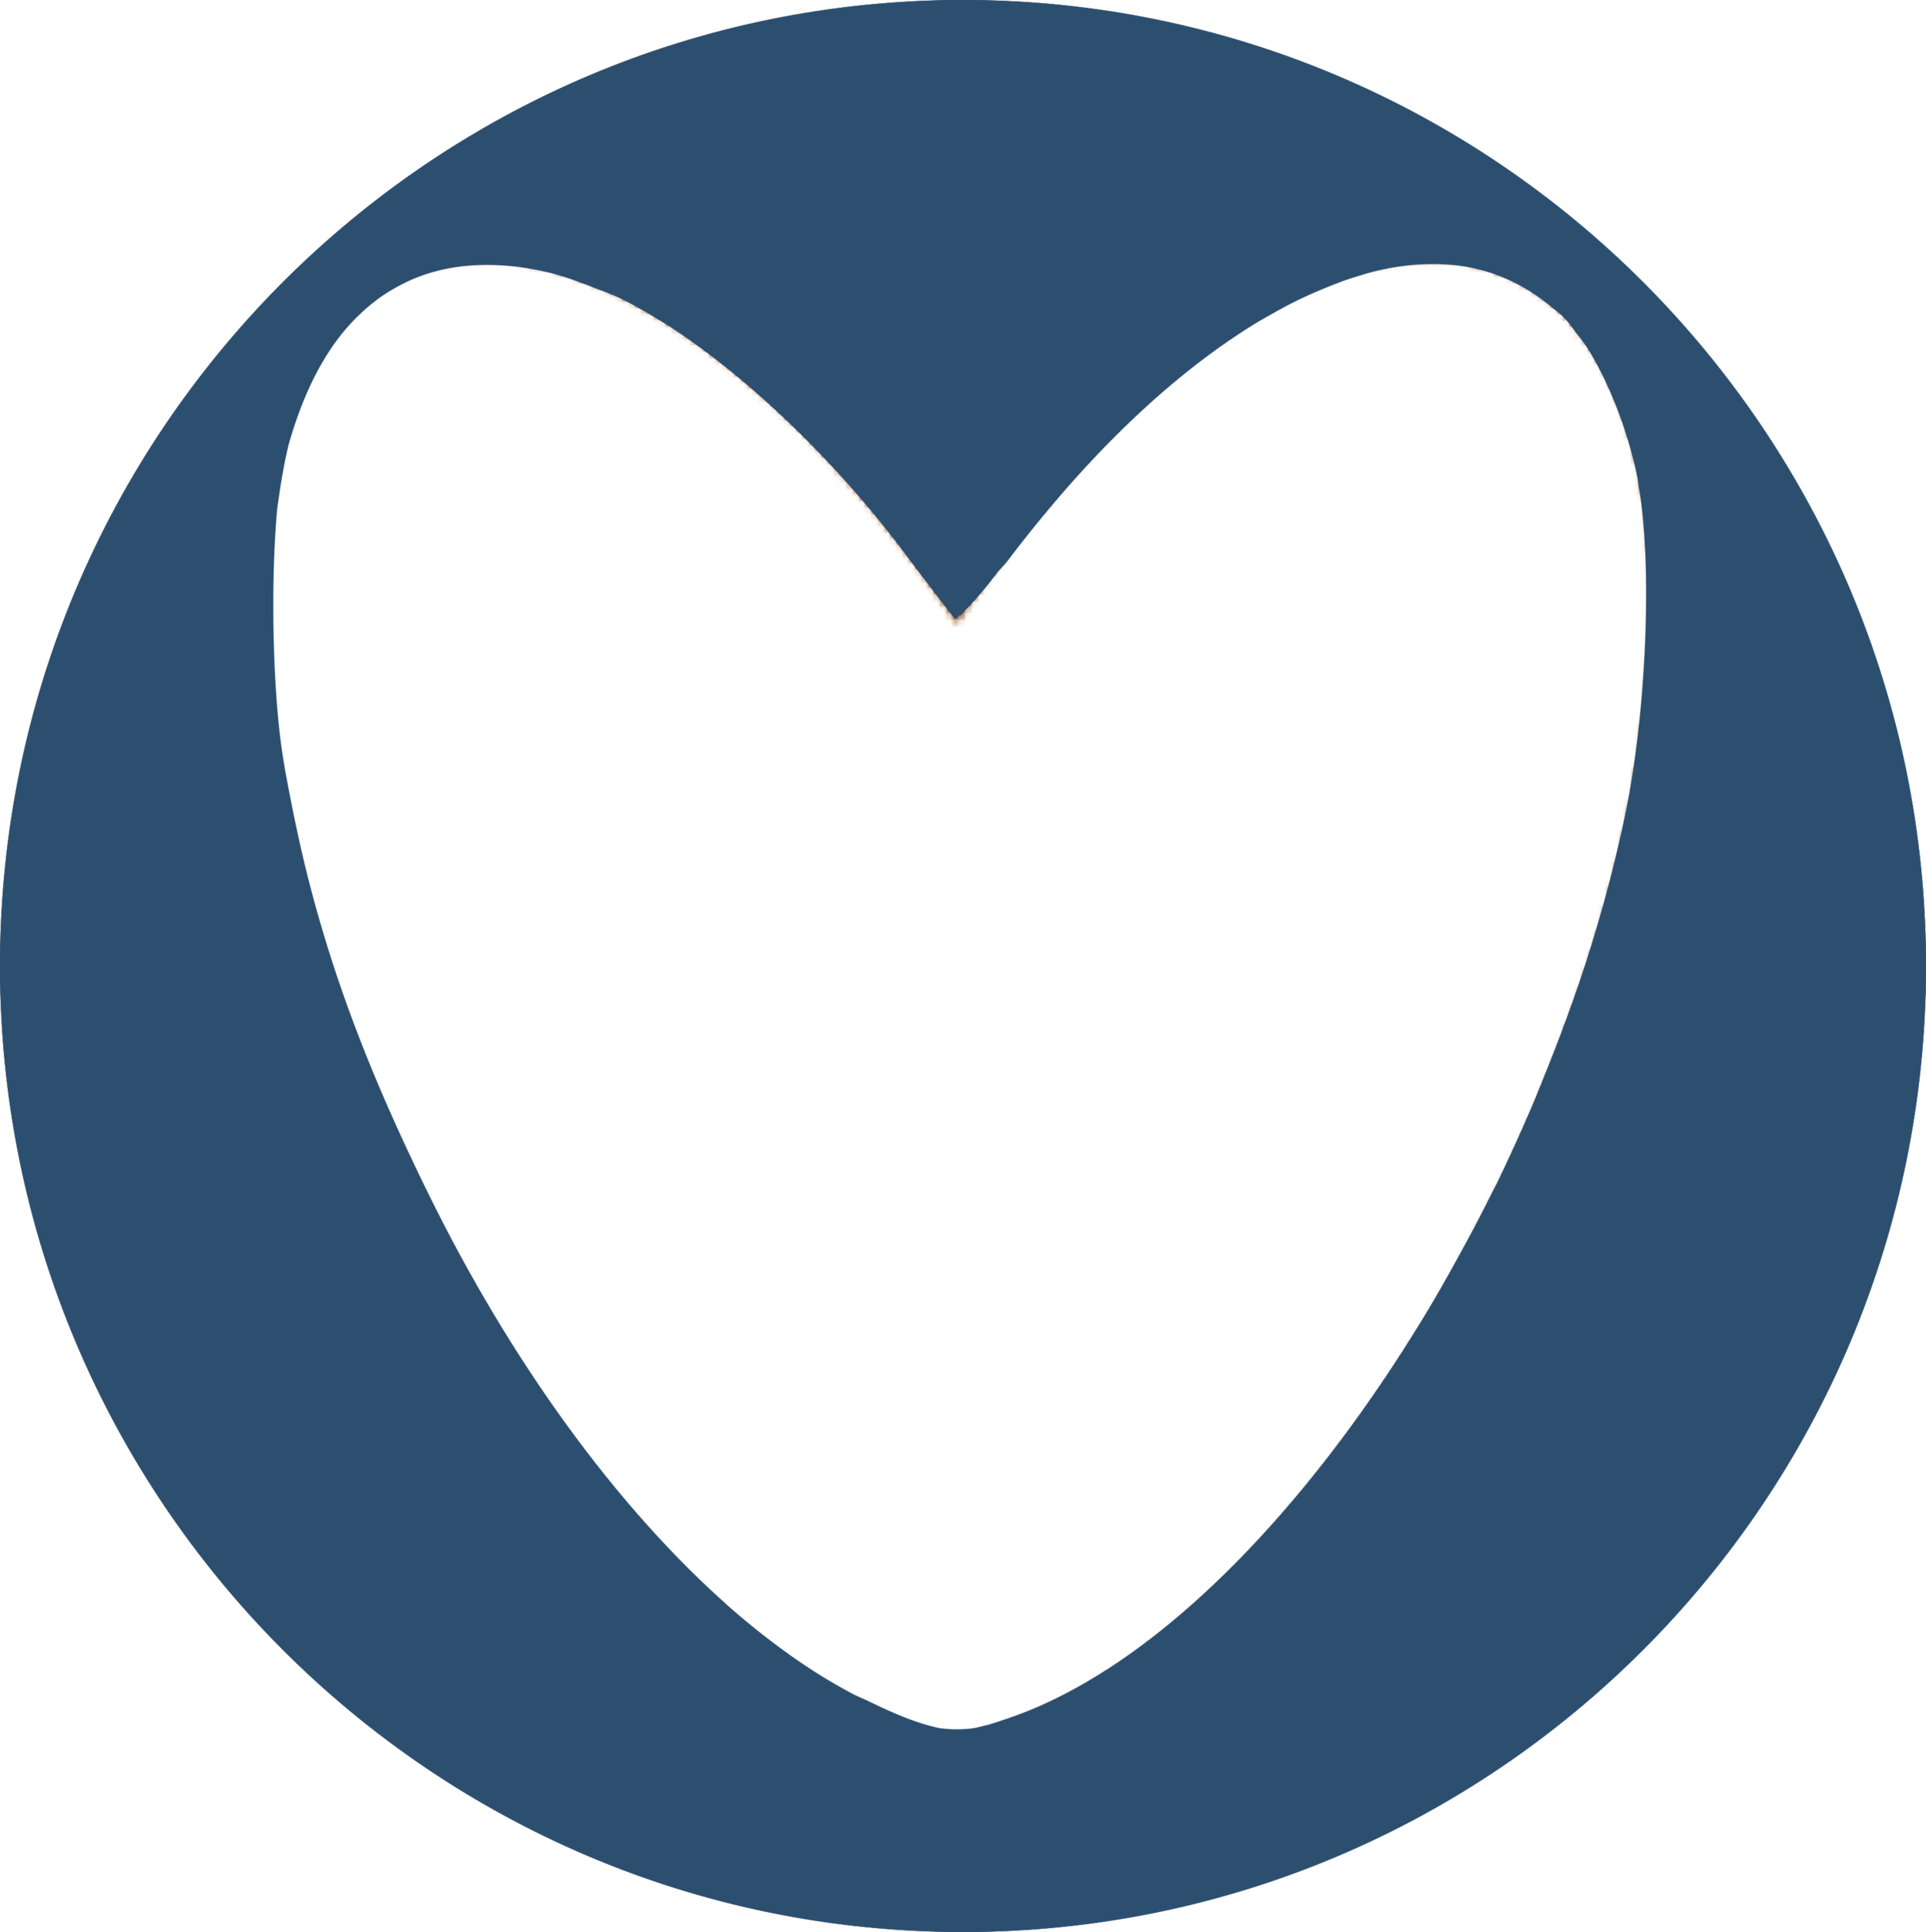 Mission Initiatives Blue Heart circle.png